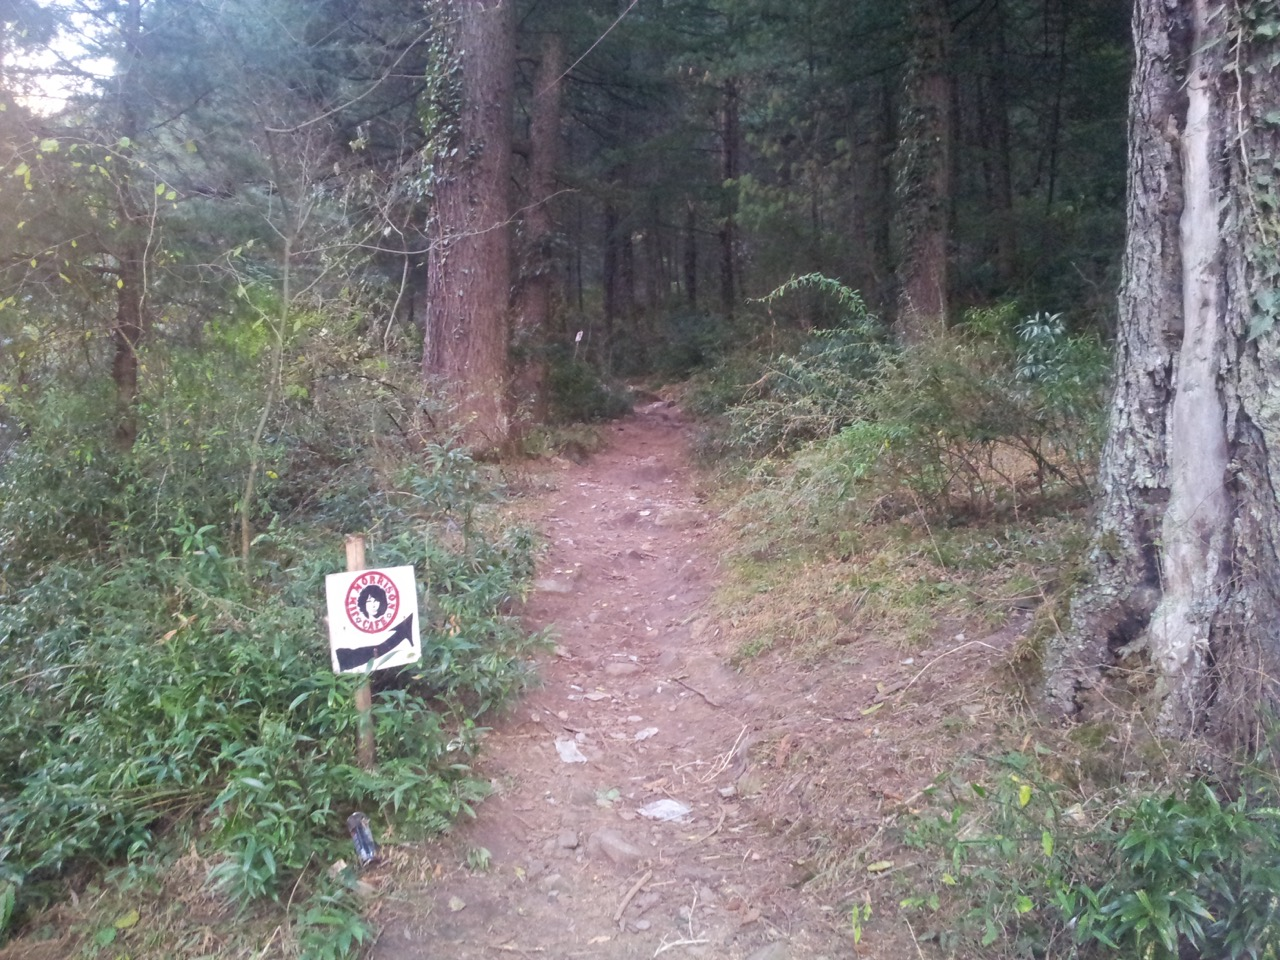 One has to walk the trail to reach the cafe. These small signs (only 3 en route) were my only guide.